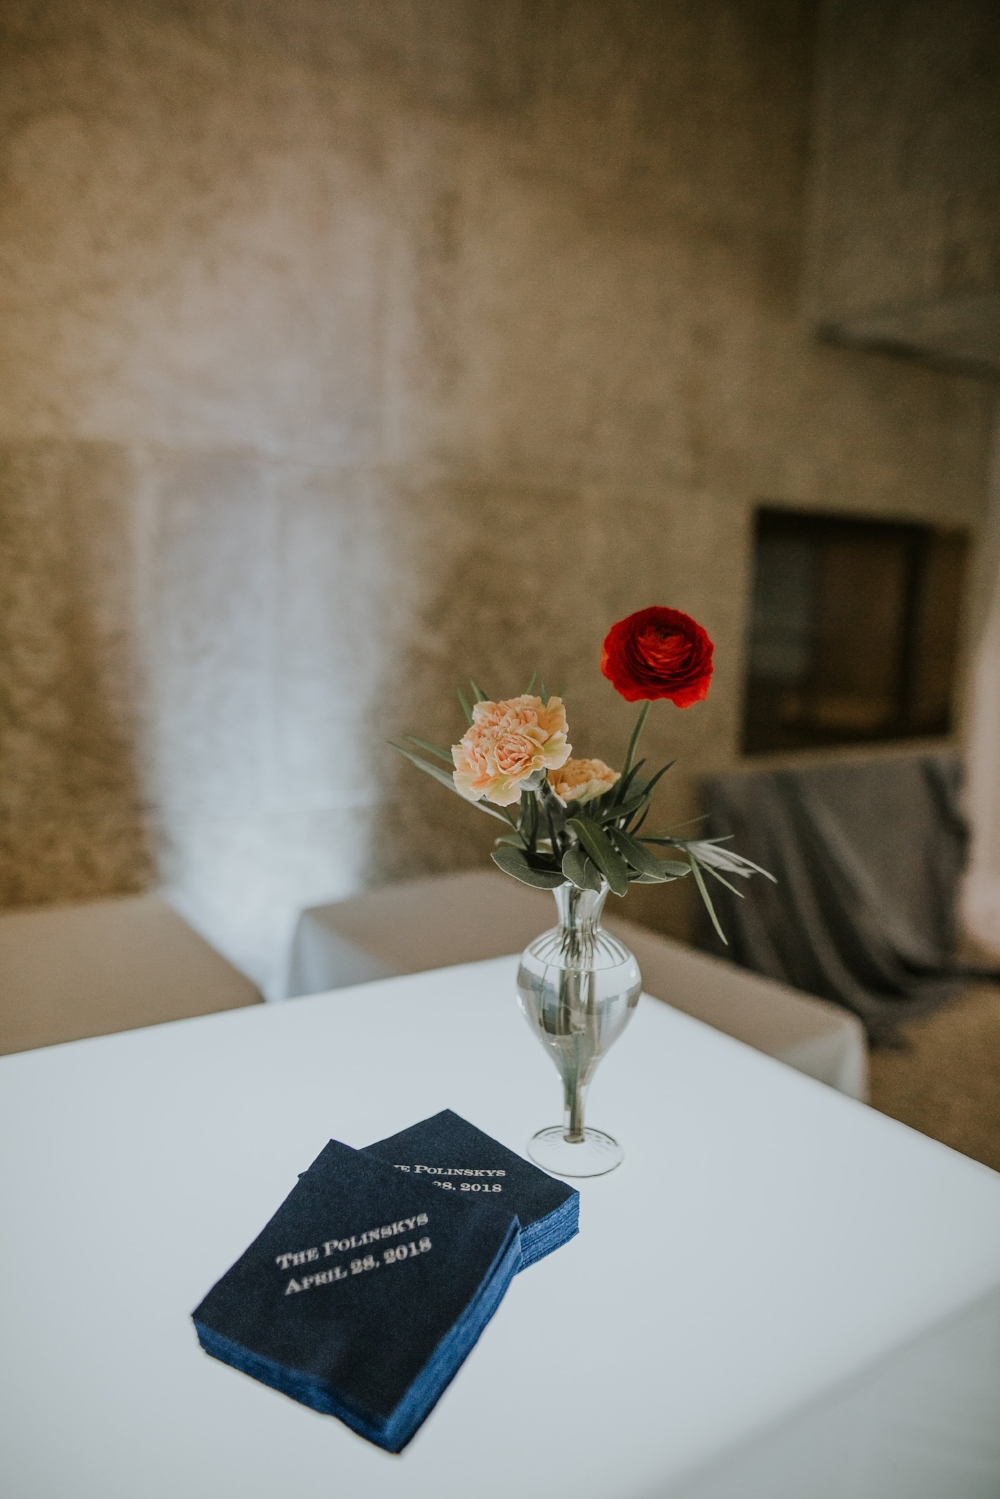 Stem Vase Wedding Decor - Winnipeg Art Gallery Wedding